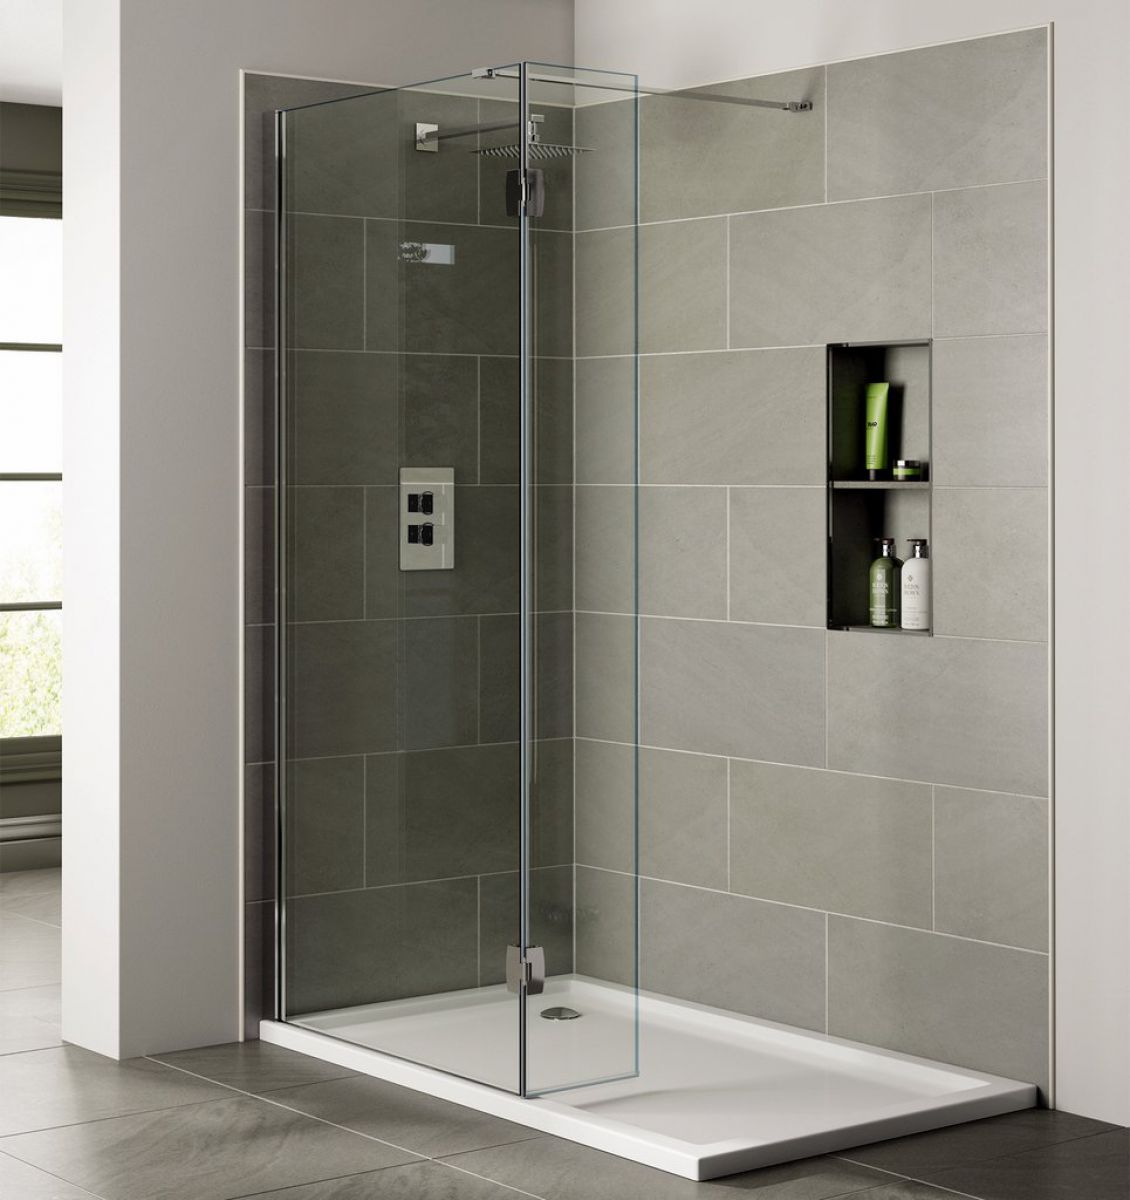 sommer rooms enclosures return room with glass store wetroom online wet screen detail shower panel screens